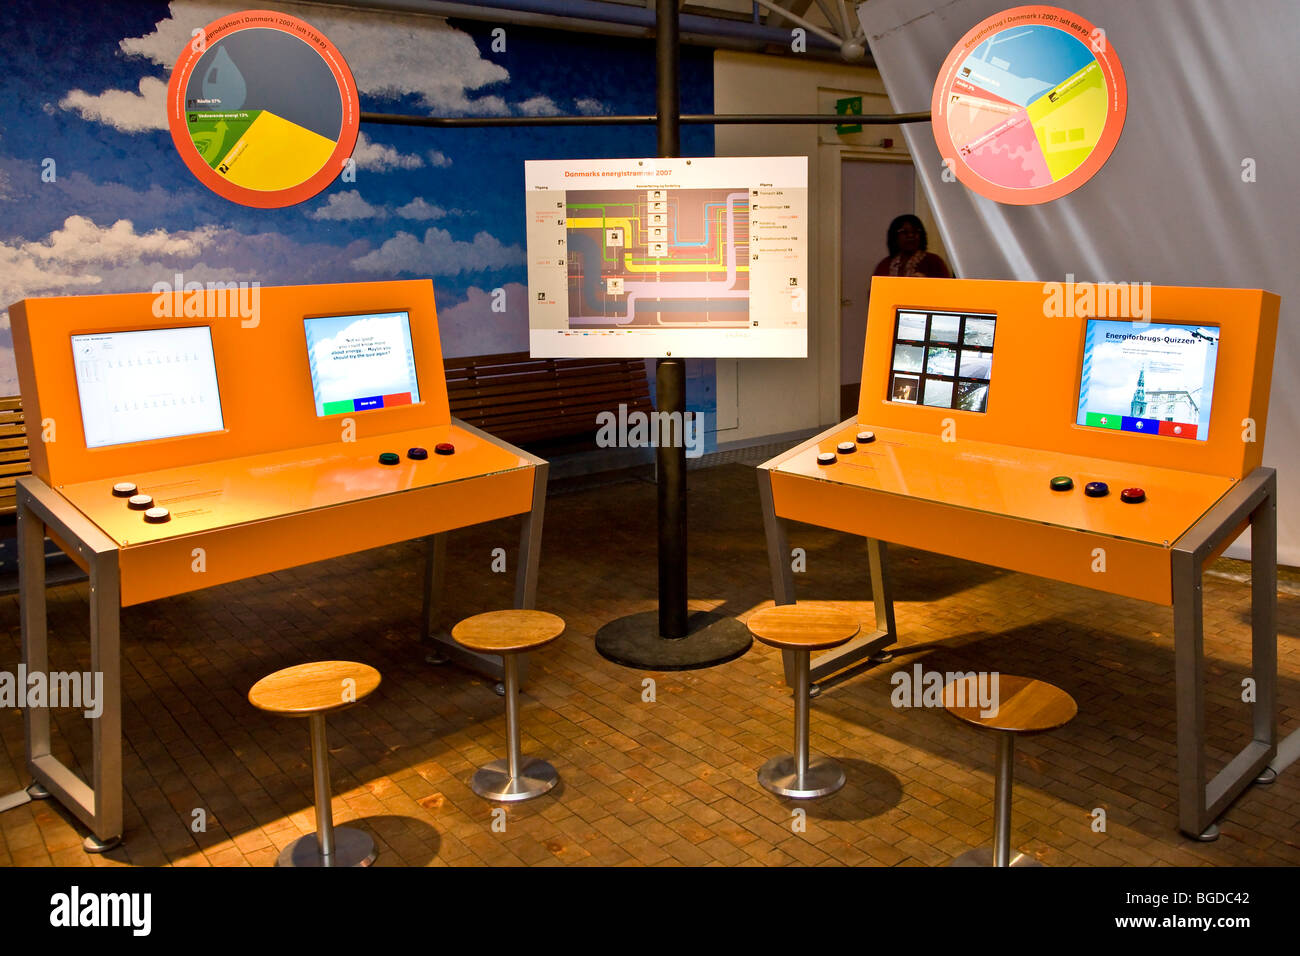 Computers for simulating the energy consumption, at the Experimentarium in Copenhagen, Denmark, Europe - Stock Image